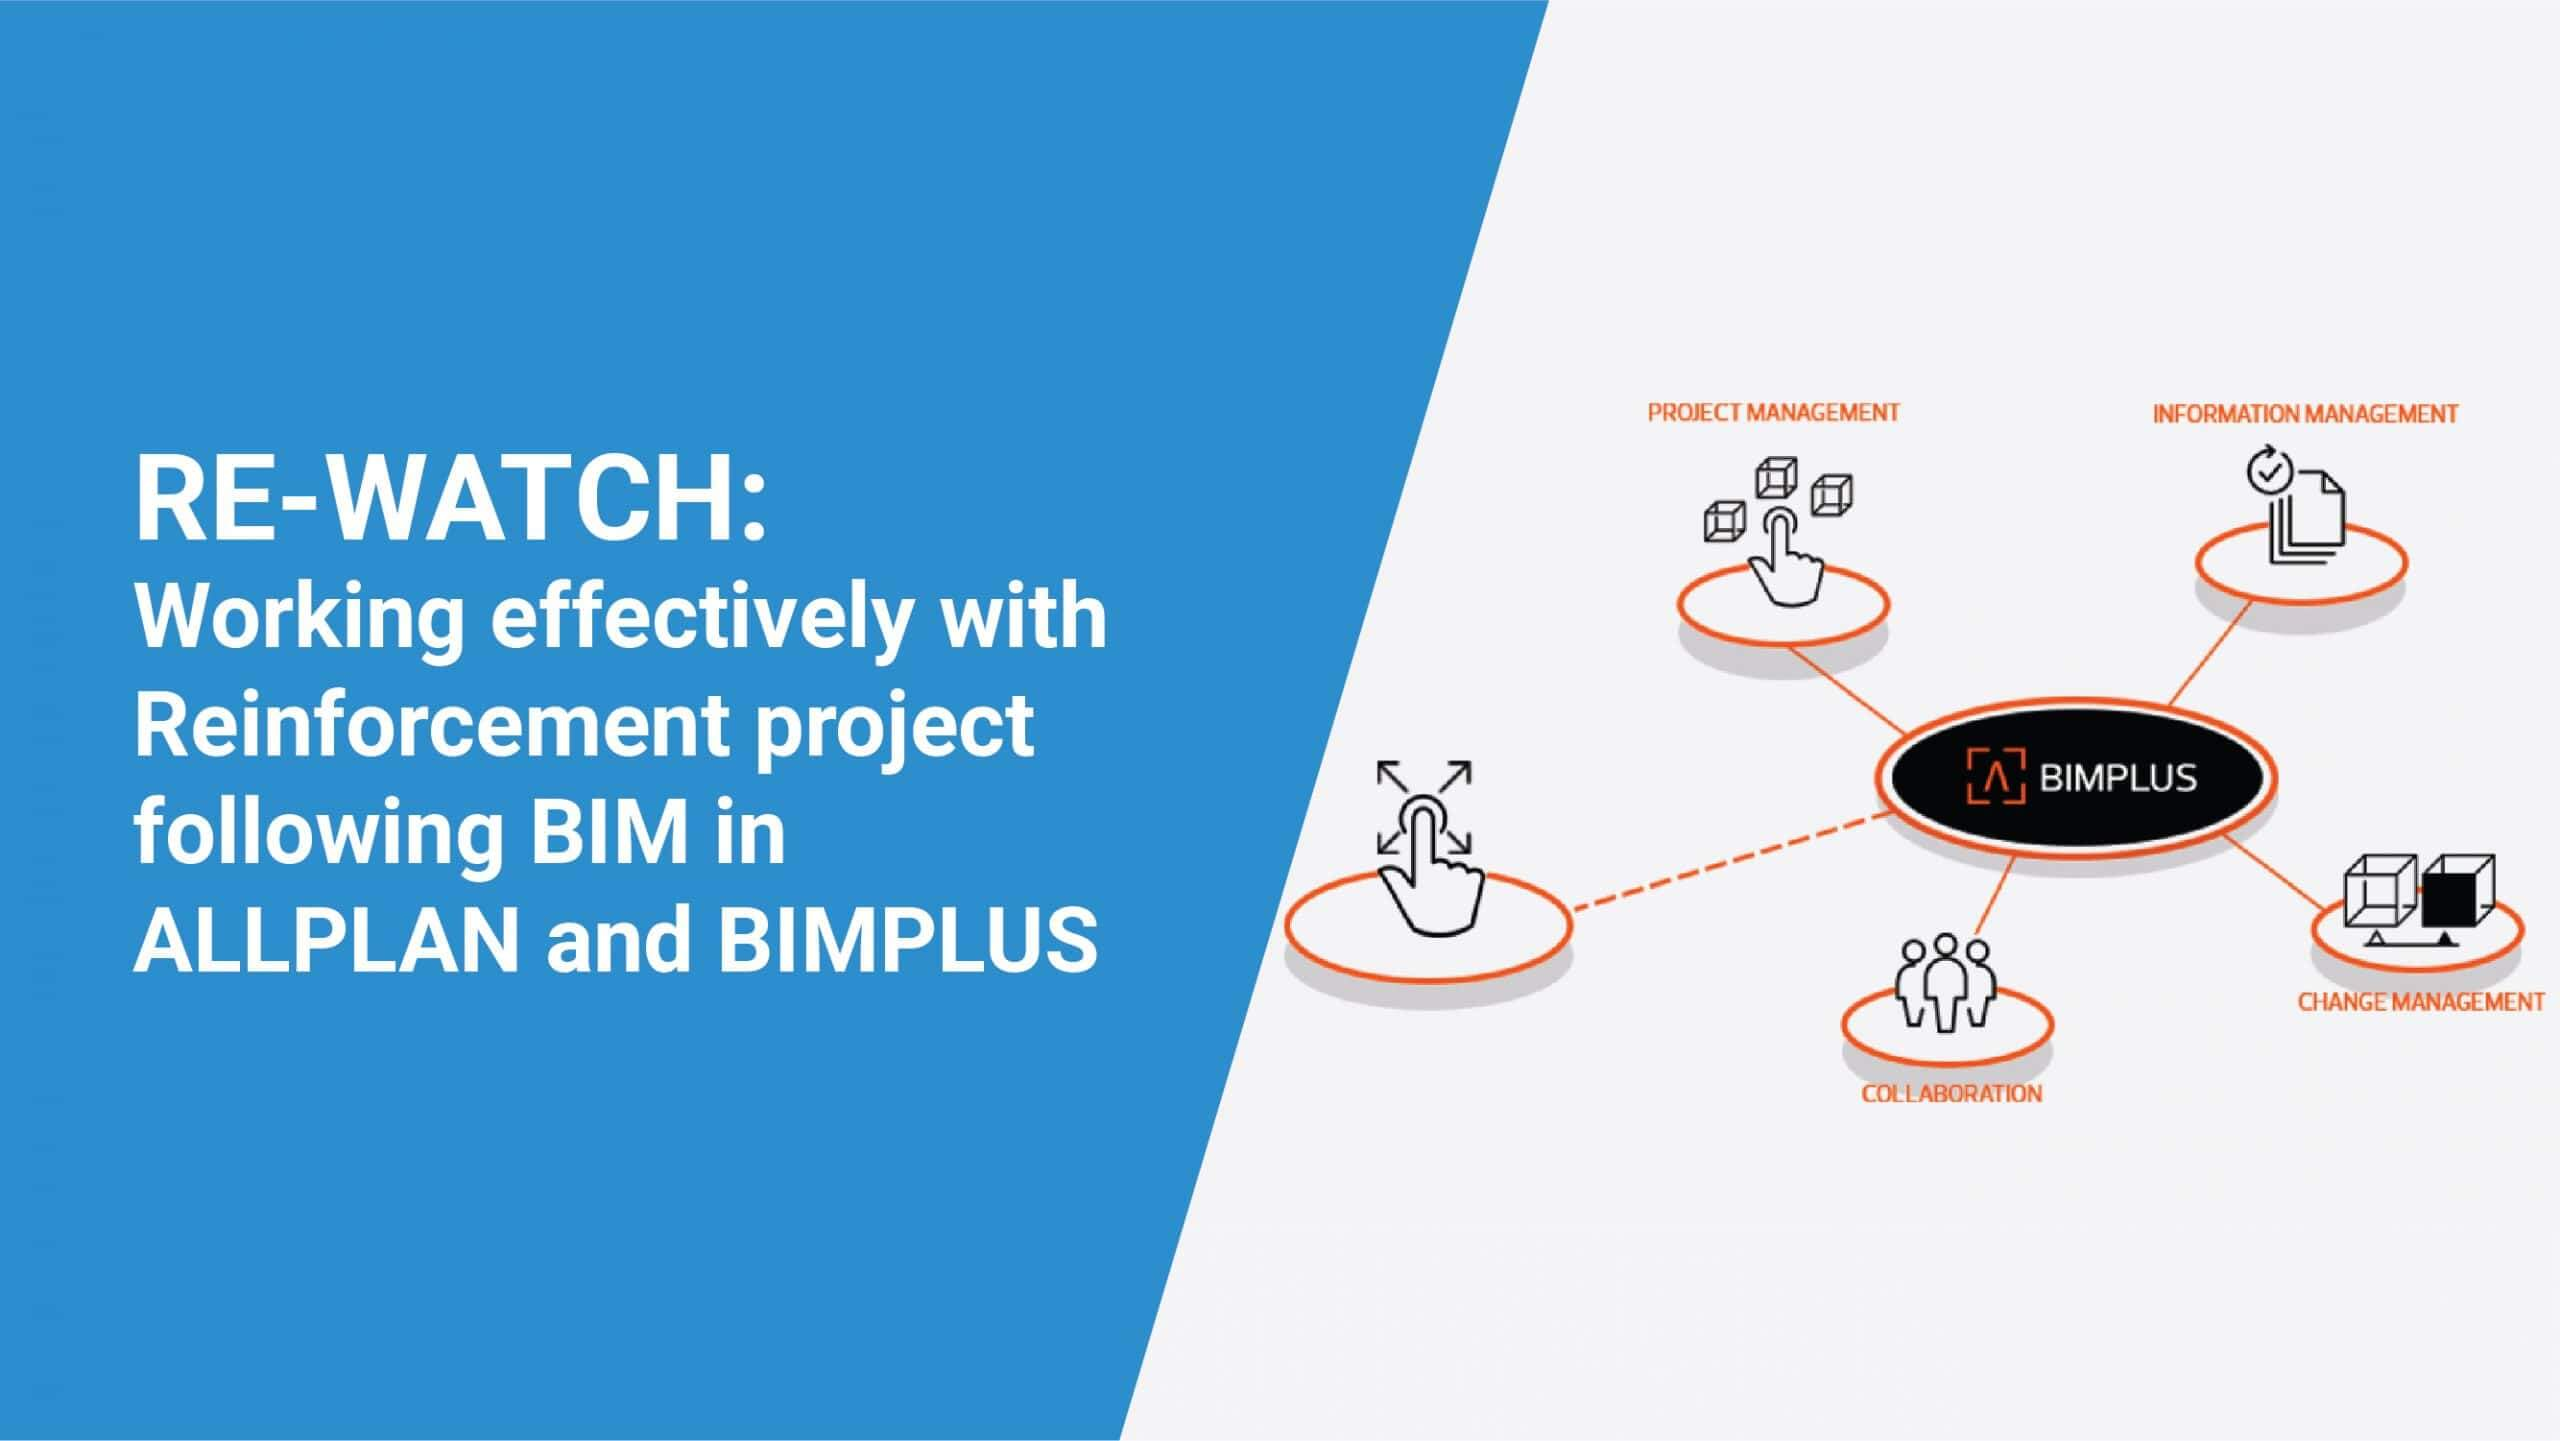 Working effectively with Reinforcement project following BIM in Allplan and BIMPLUS